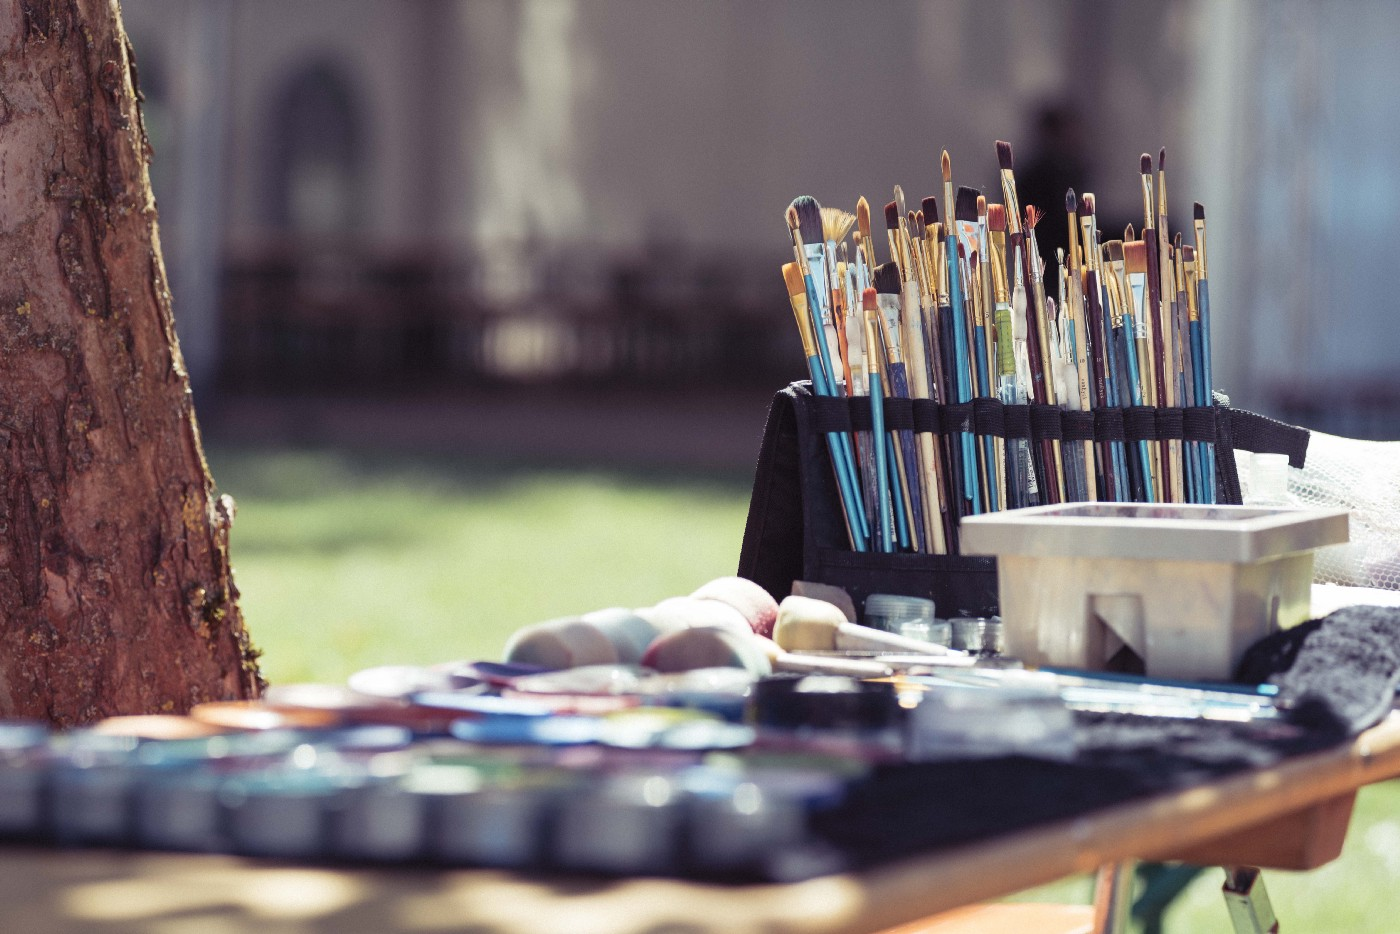 Close up of art-set consisting of dozens of brushes standing up and paint on a table outside in a park on a sunny day.